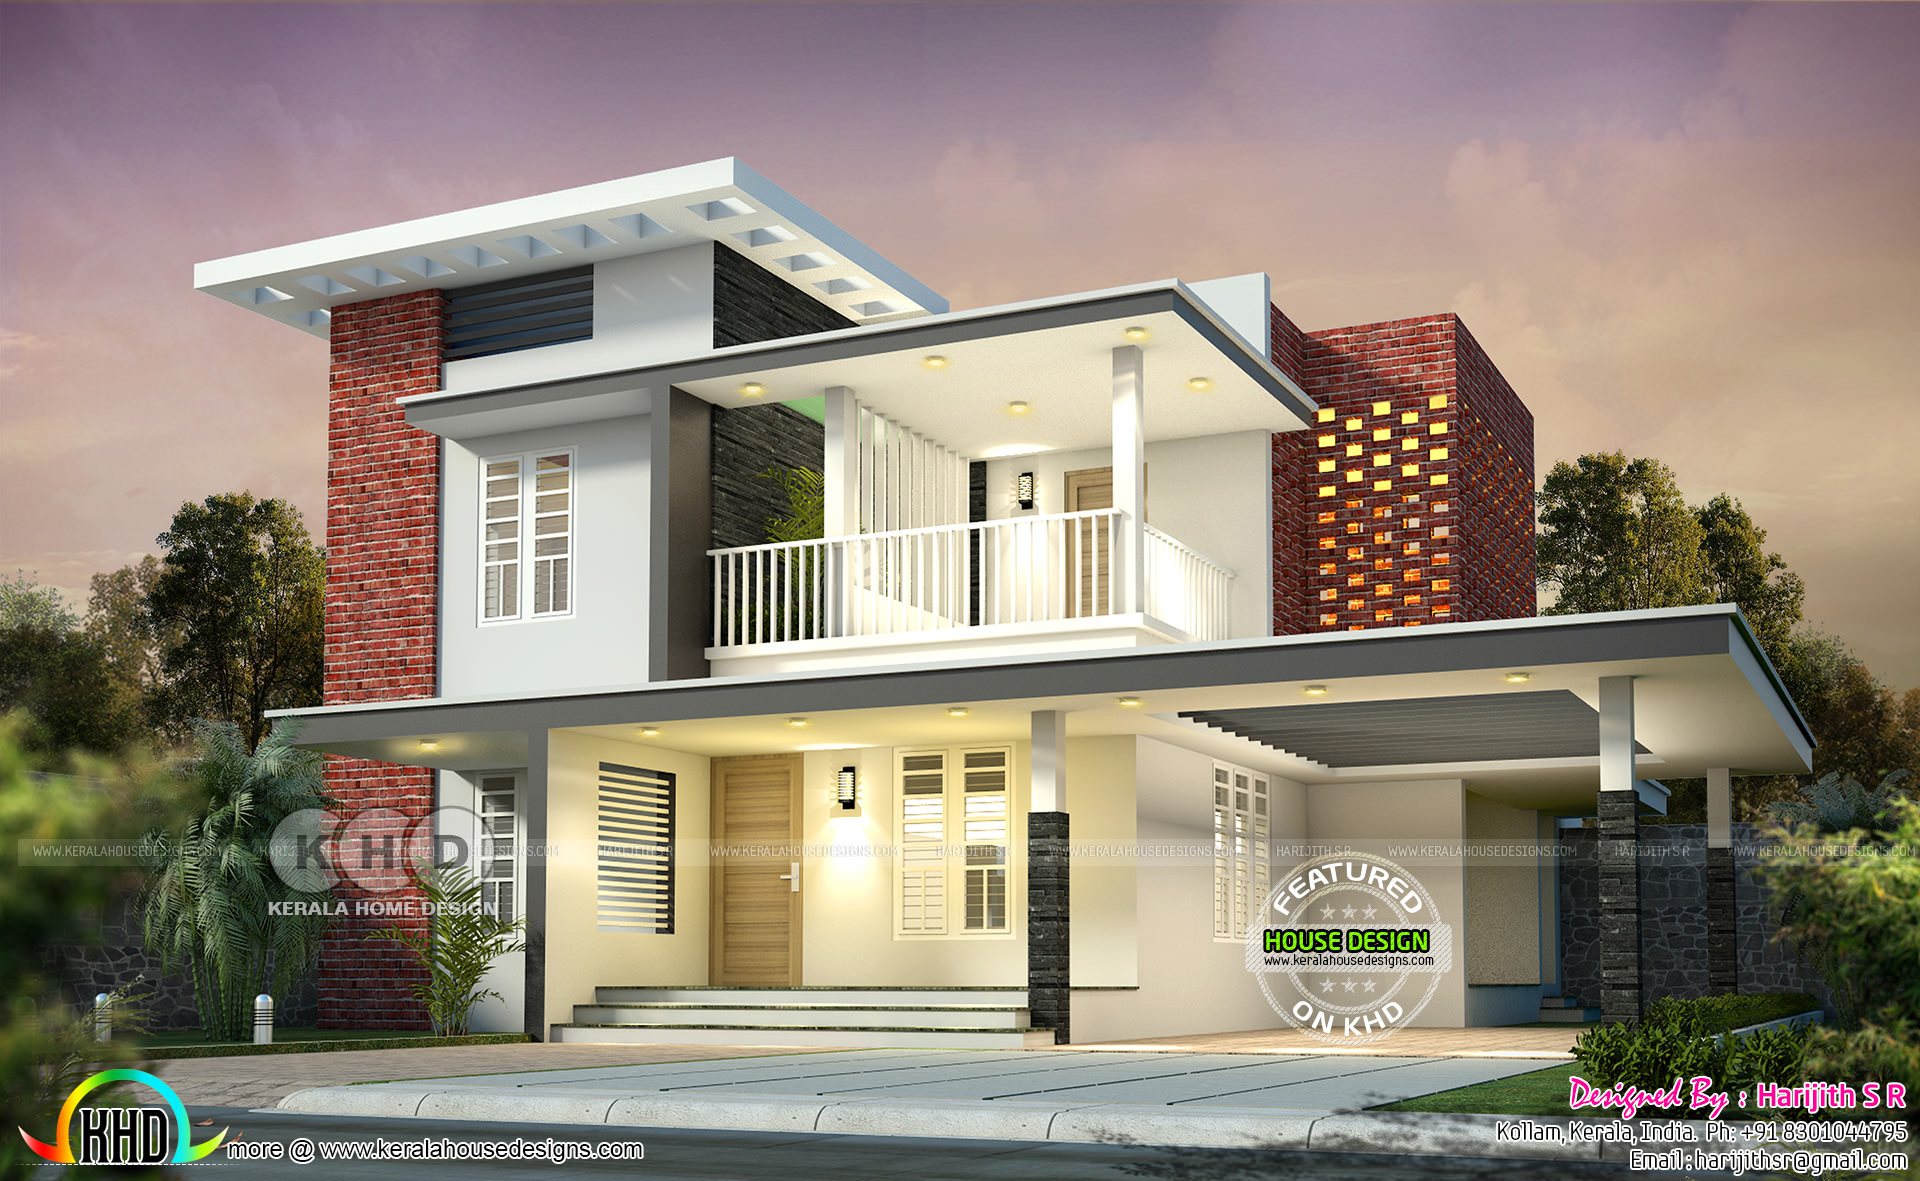 200 Sq M 2 Bedroom Attached Flat Roof House Kerala Home Design Bloglovin